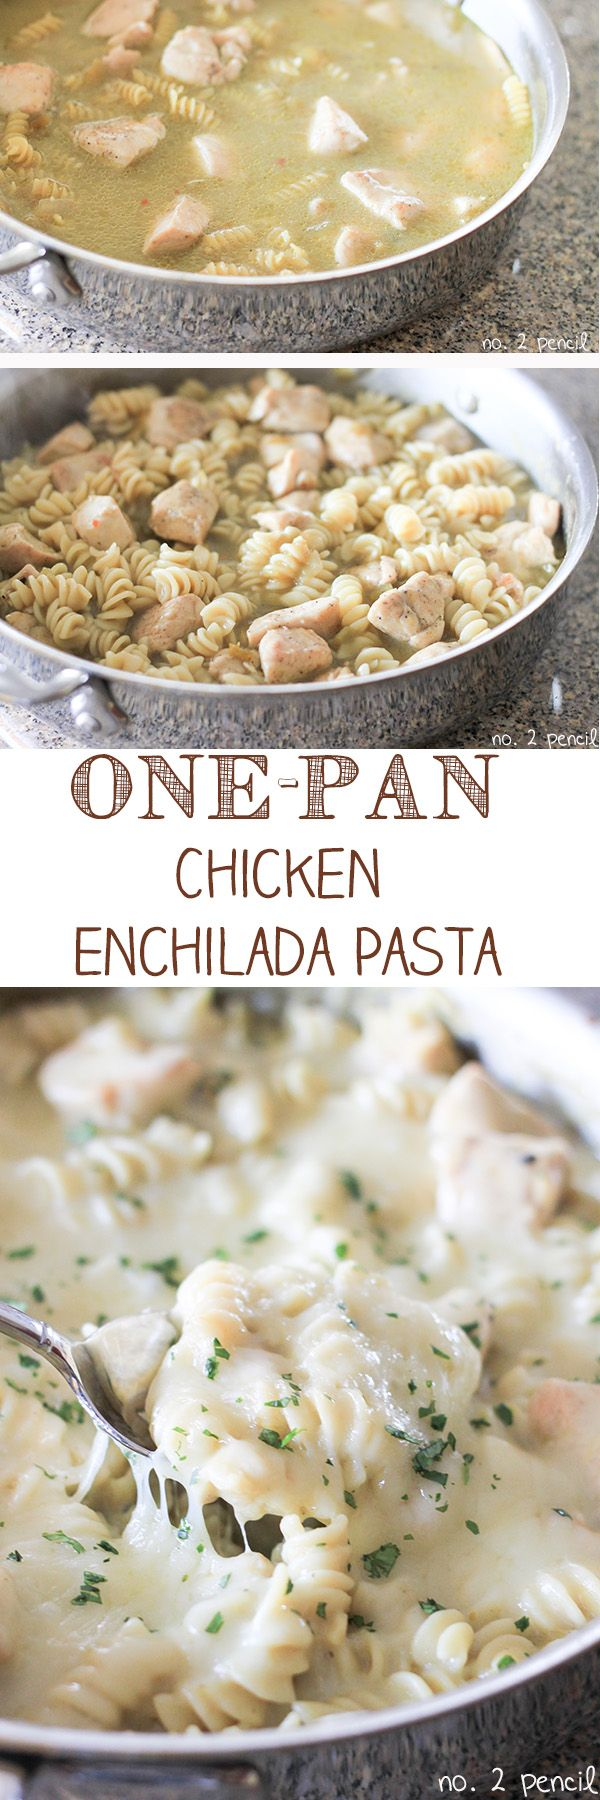 One-Pan Chicken Enchilada Pasta~T~ Yummy. I used Greek yogurt instead of sour cream to cut fat and Pepper Jack for a little heat.